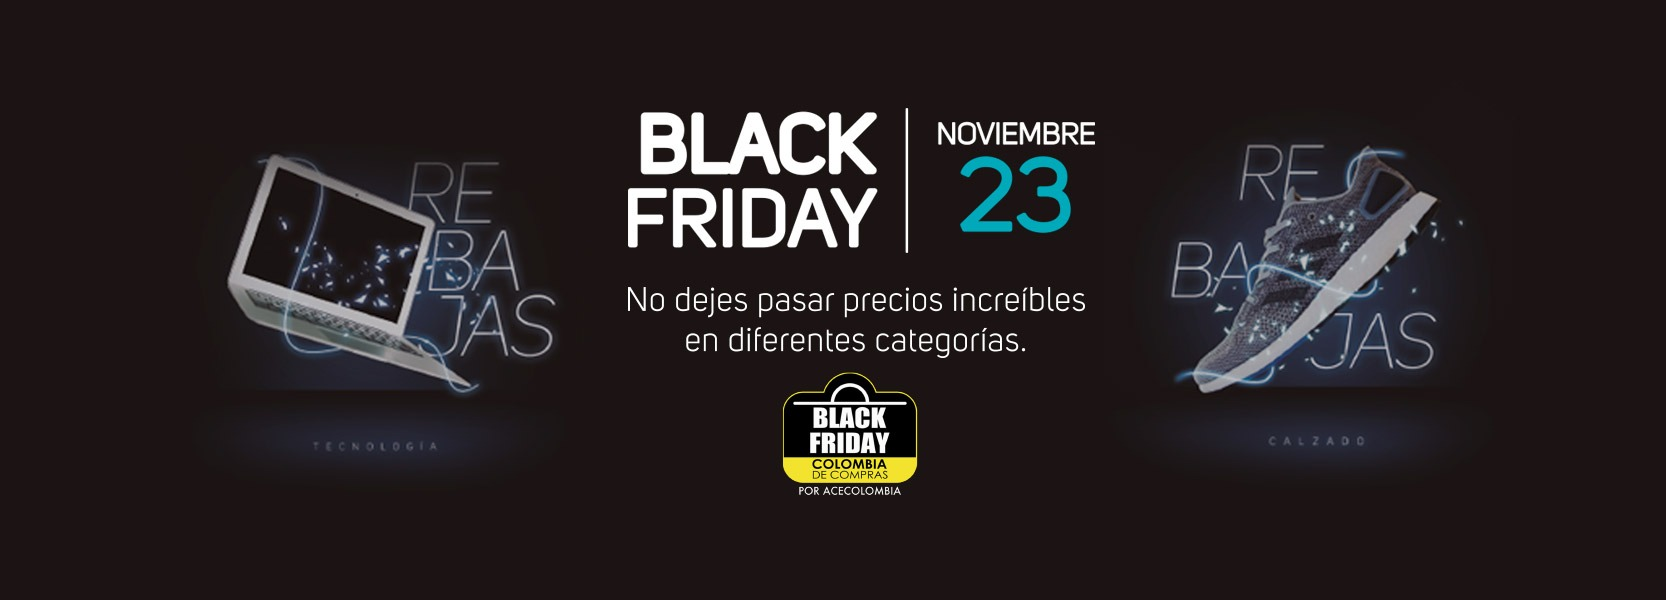 Vitrina-BlackFriday